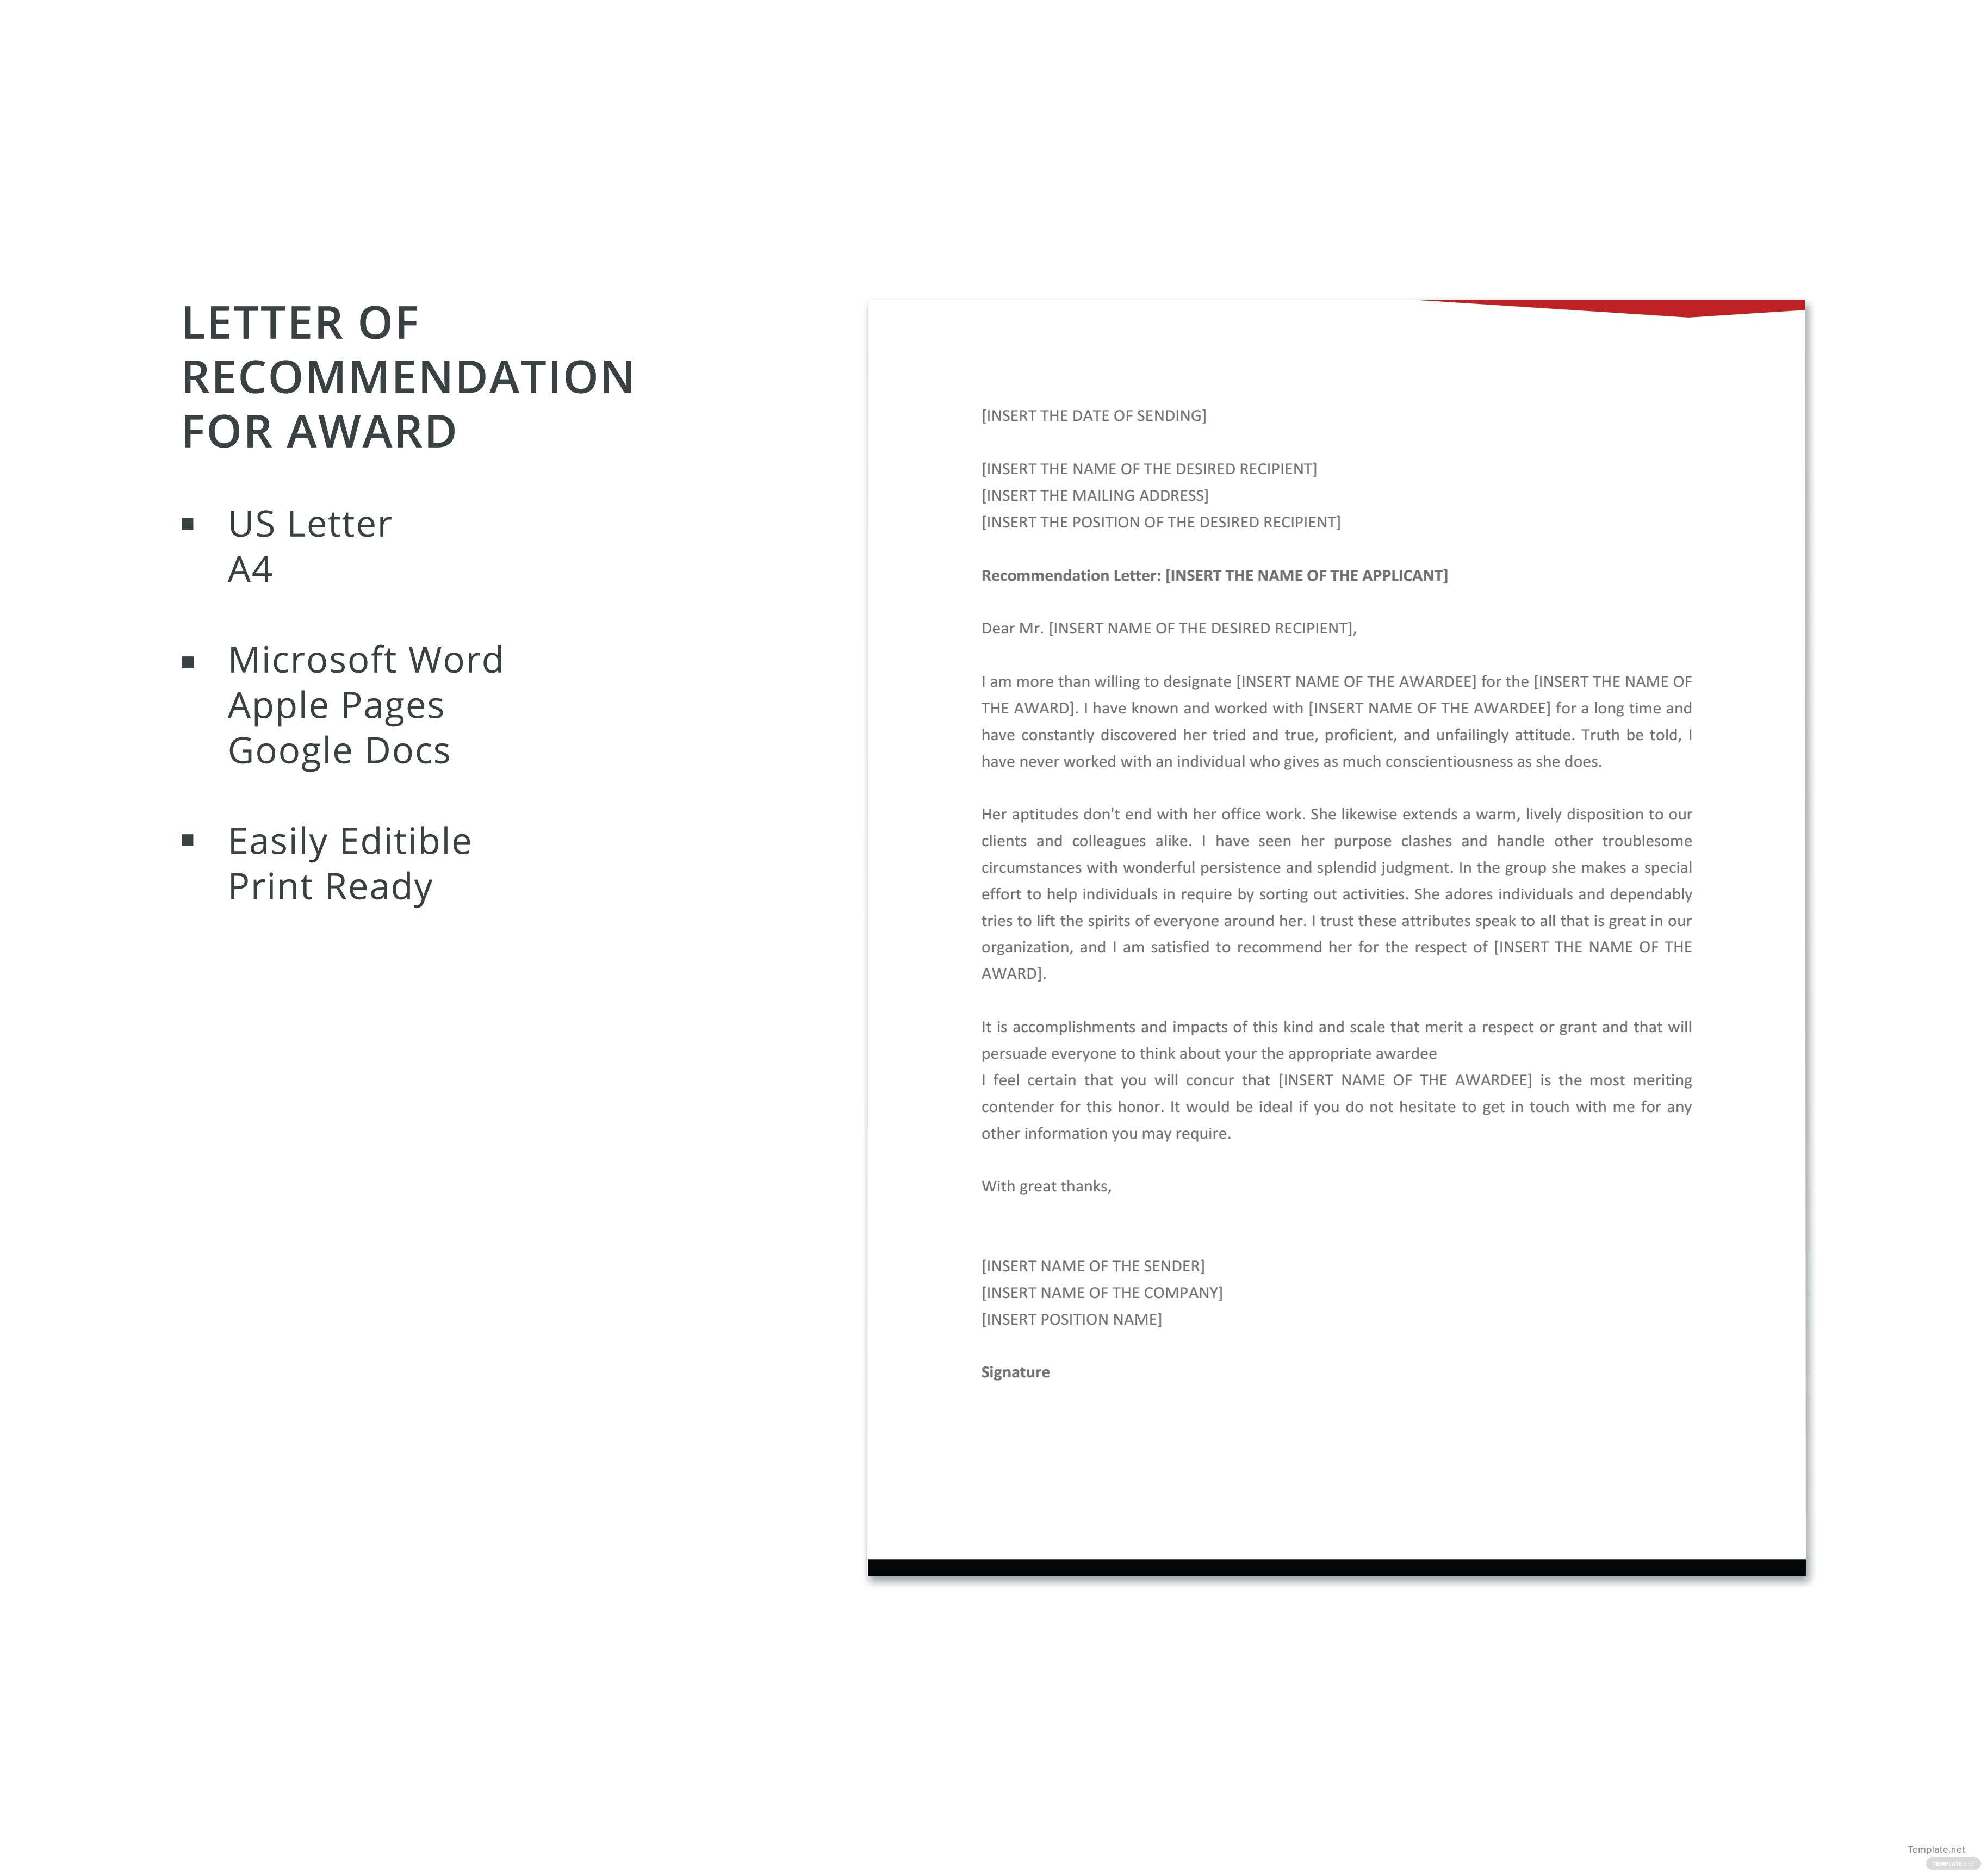 Free letter template of recommendation for award in microsoft word apple pages google docs for Google docs award template